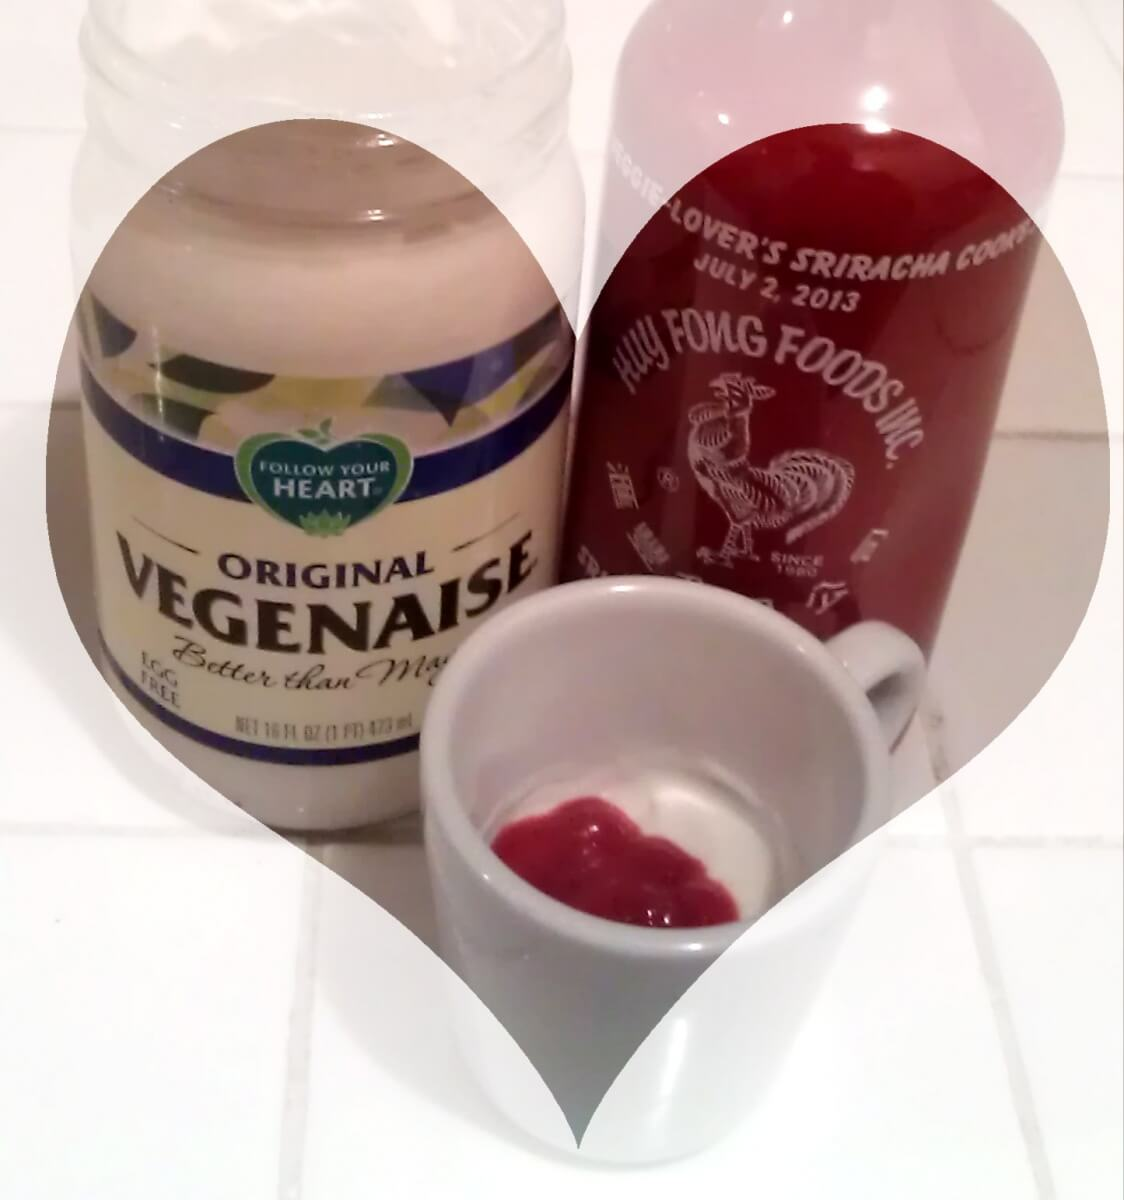 follow your heart vegenaise and sriacha chili sauce aioli